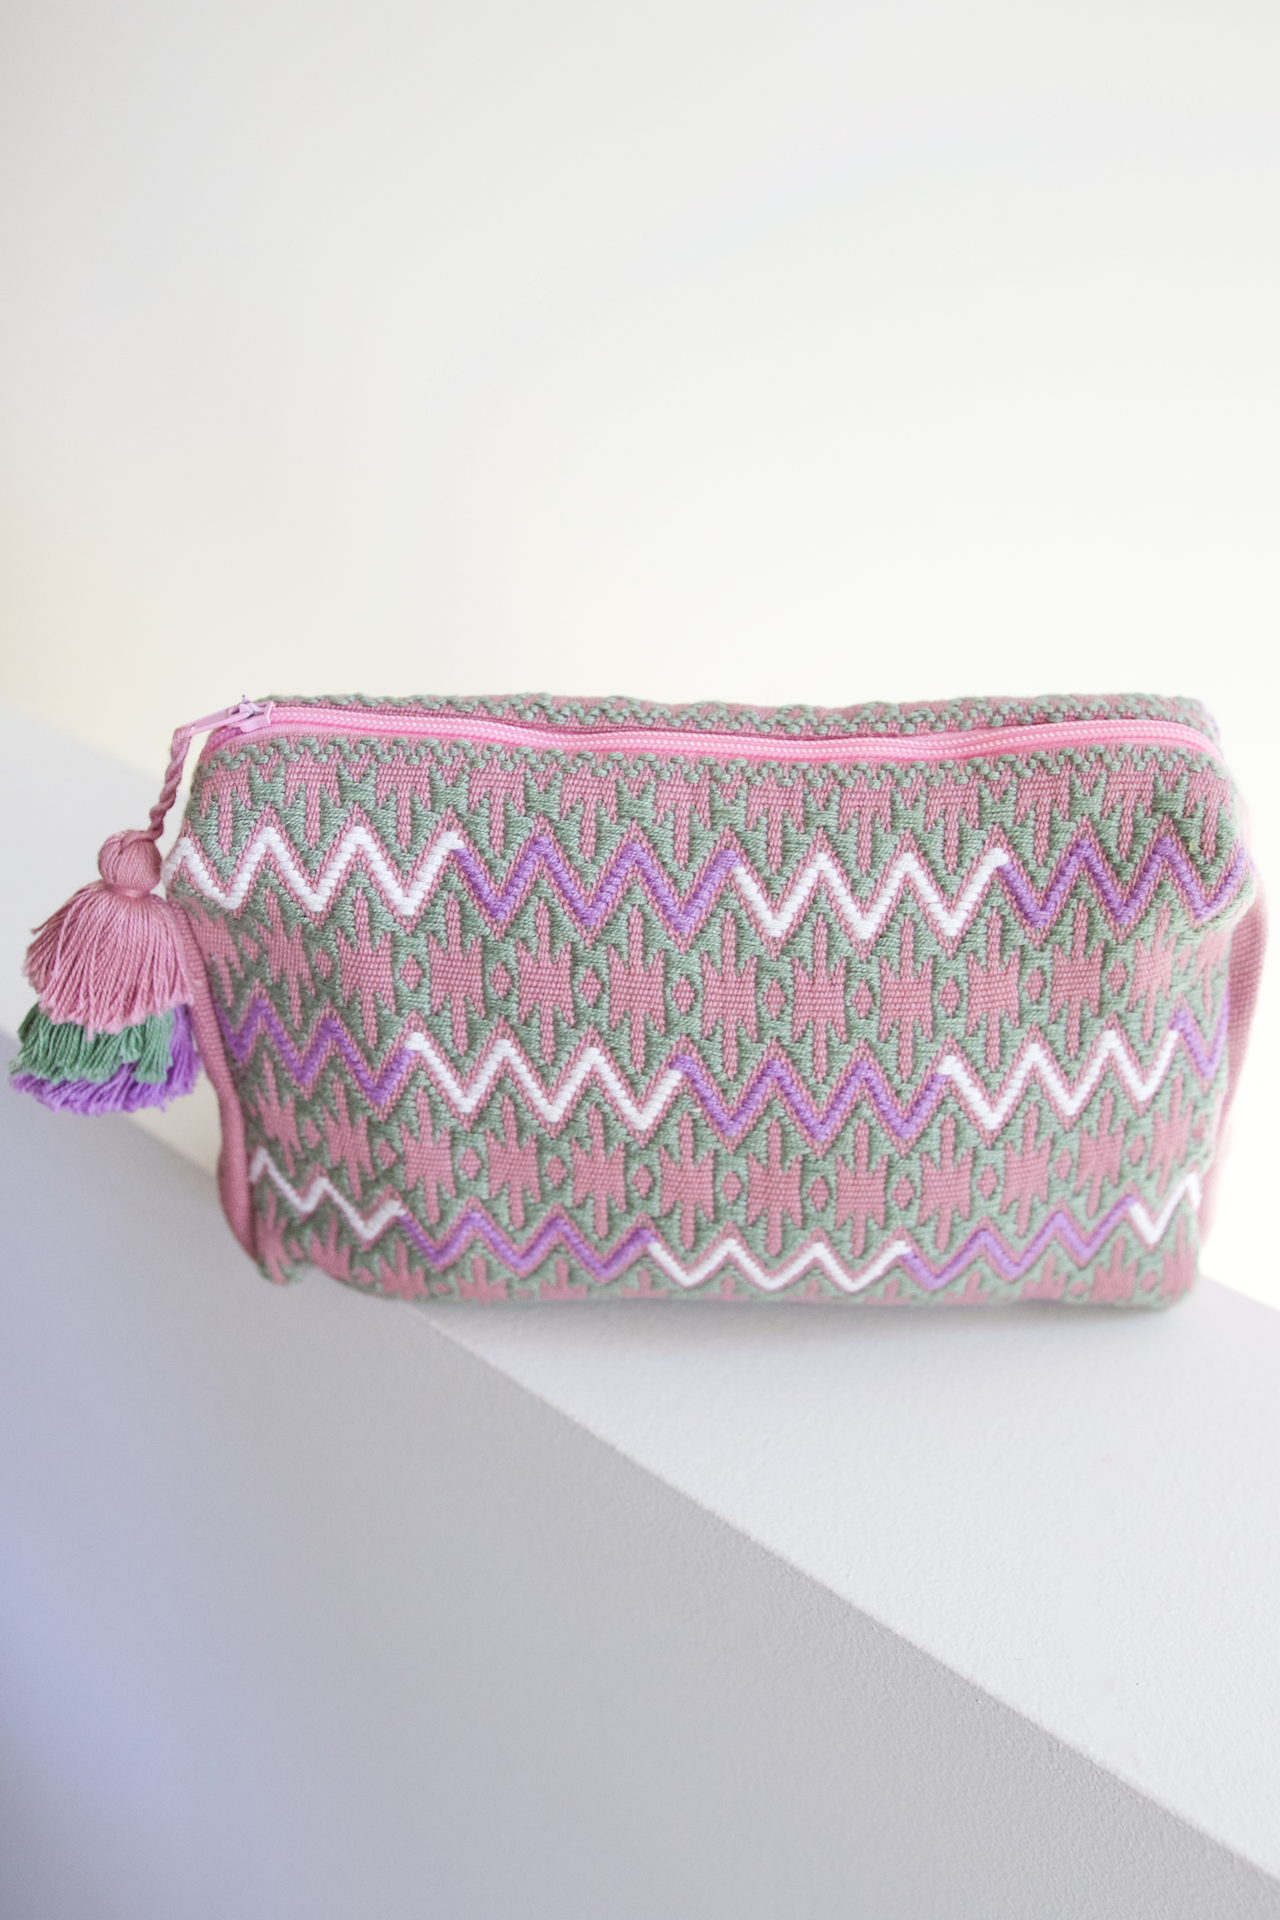 Viaje Pouch  Travel Pouch Pink - Cielo Collective handmade Mexico Guatemala